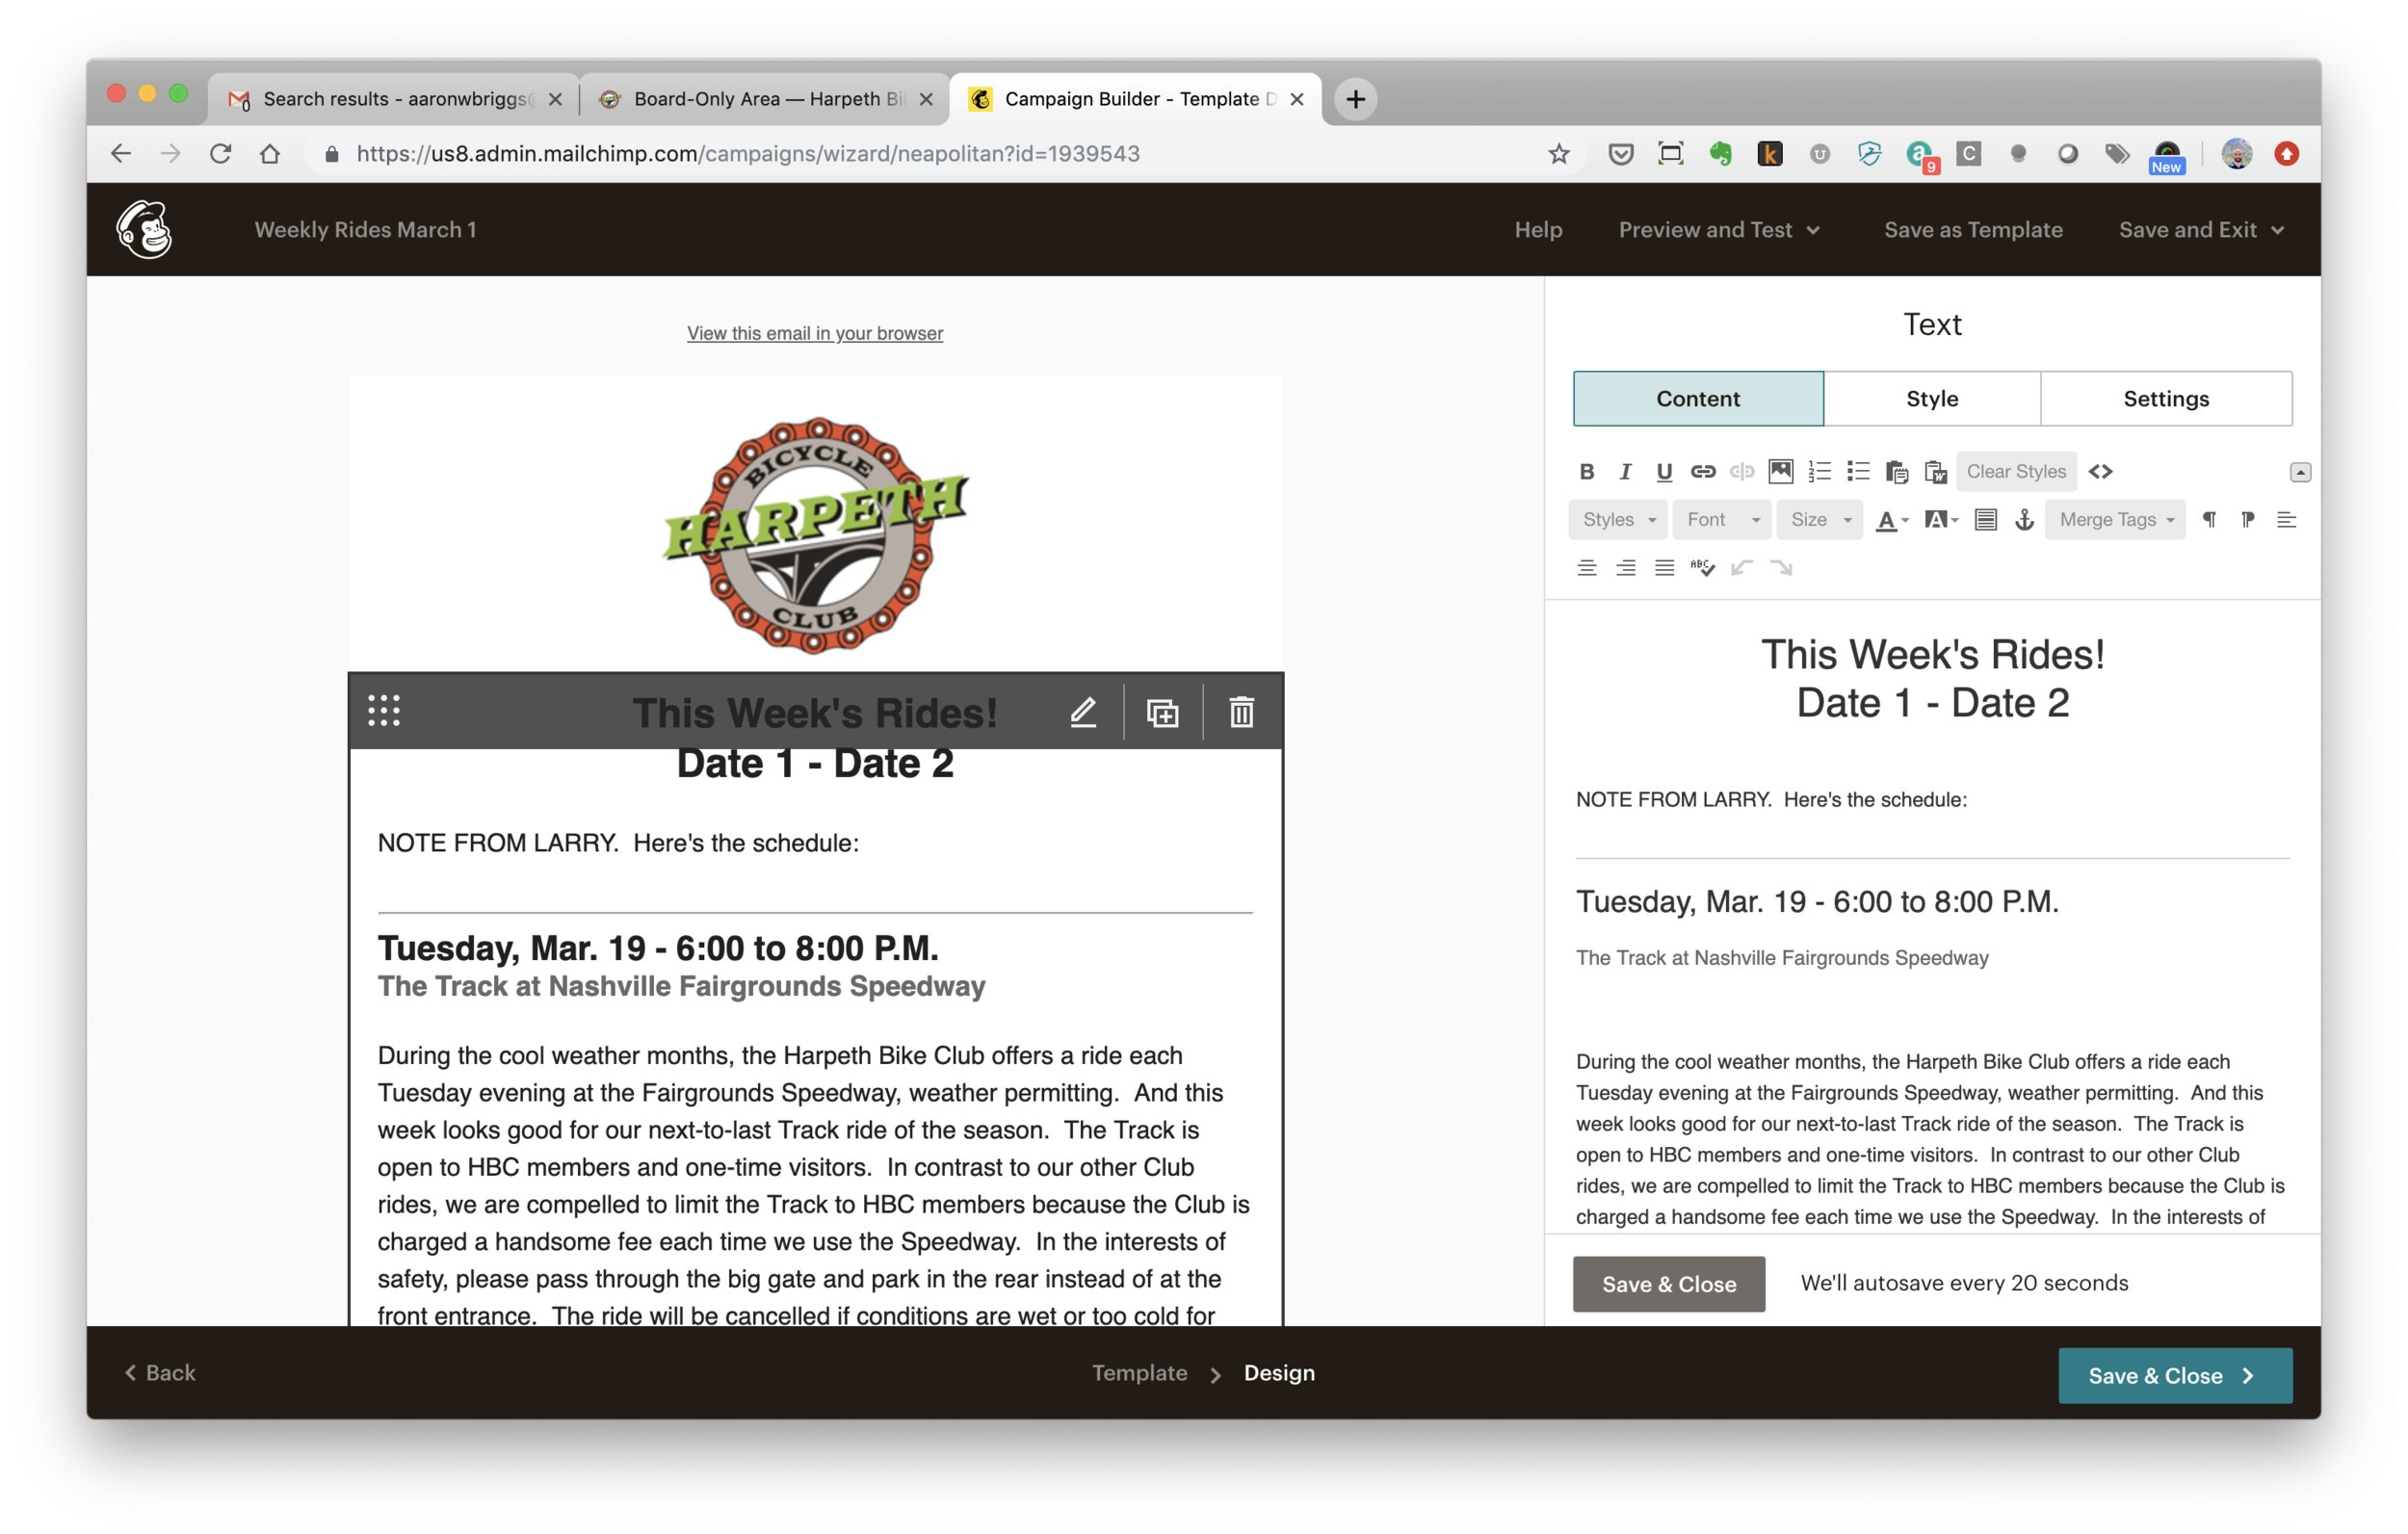 Click the content section on the right you want to edit, as described in Step 3. Then edit the content on the right as described in Step 4. Then click Save and Close as described in Steps 5 and 6.